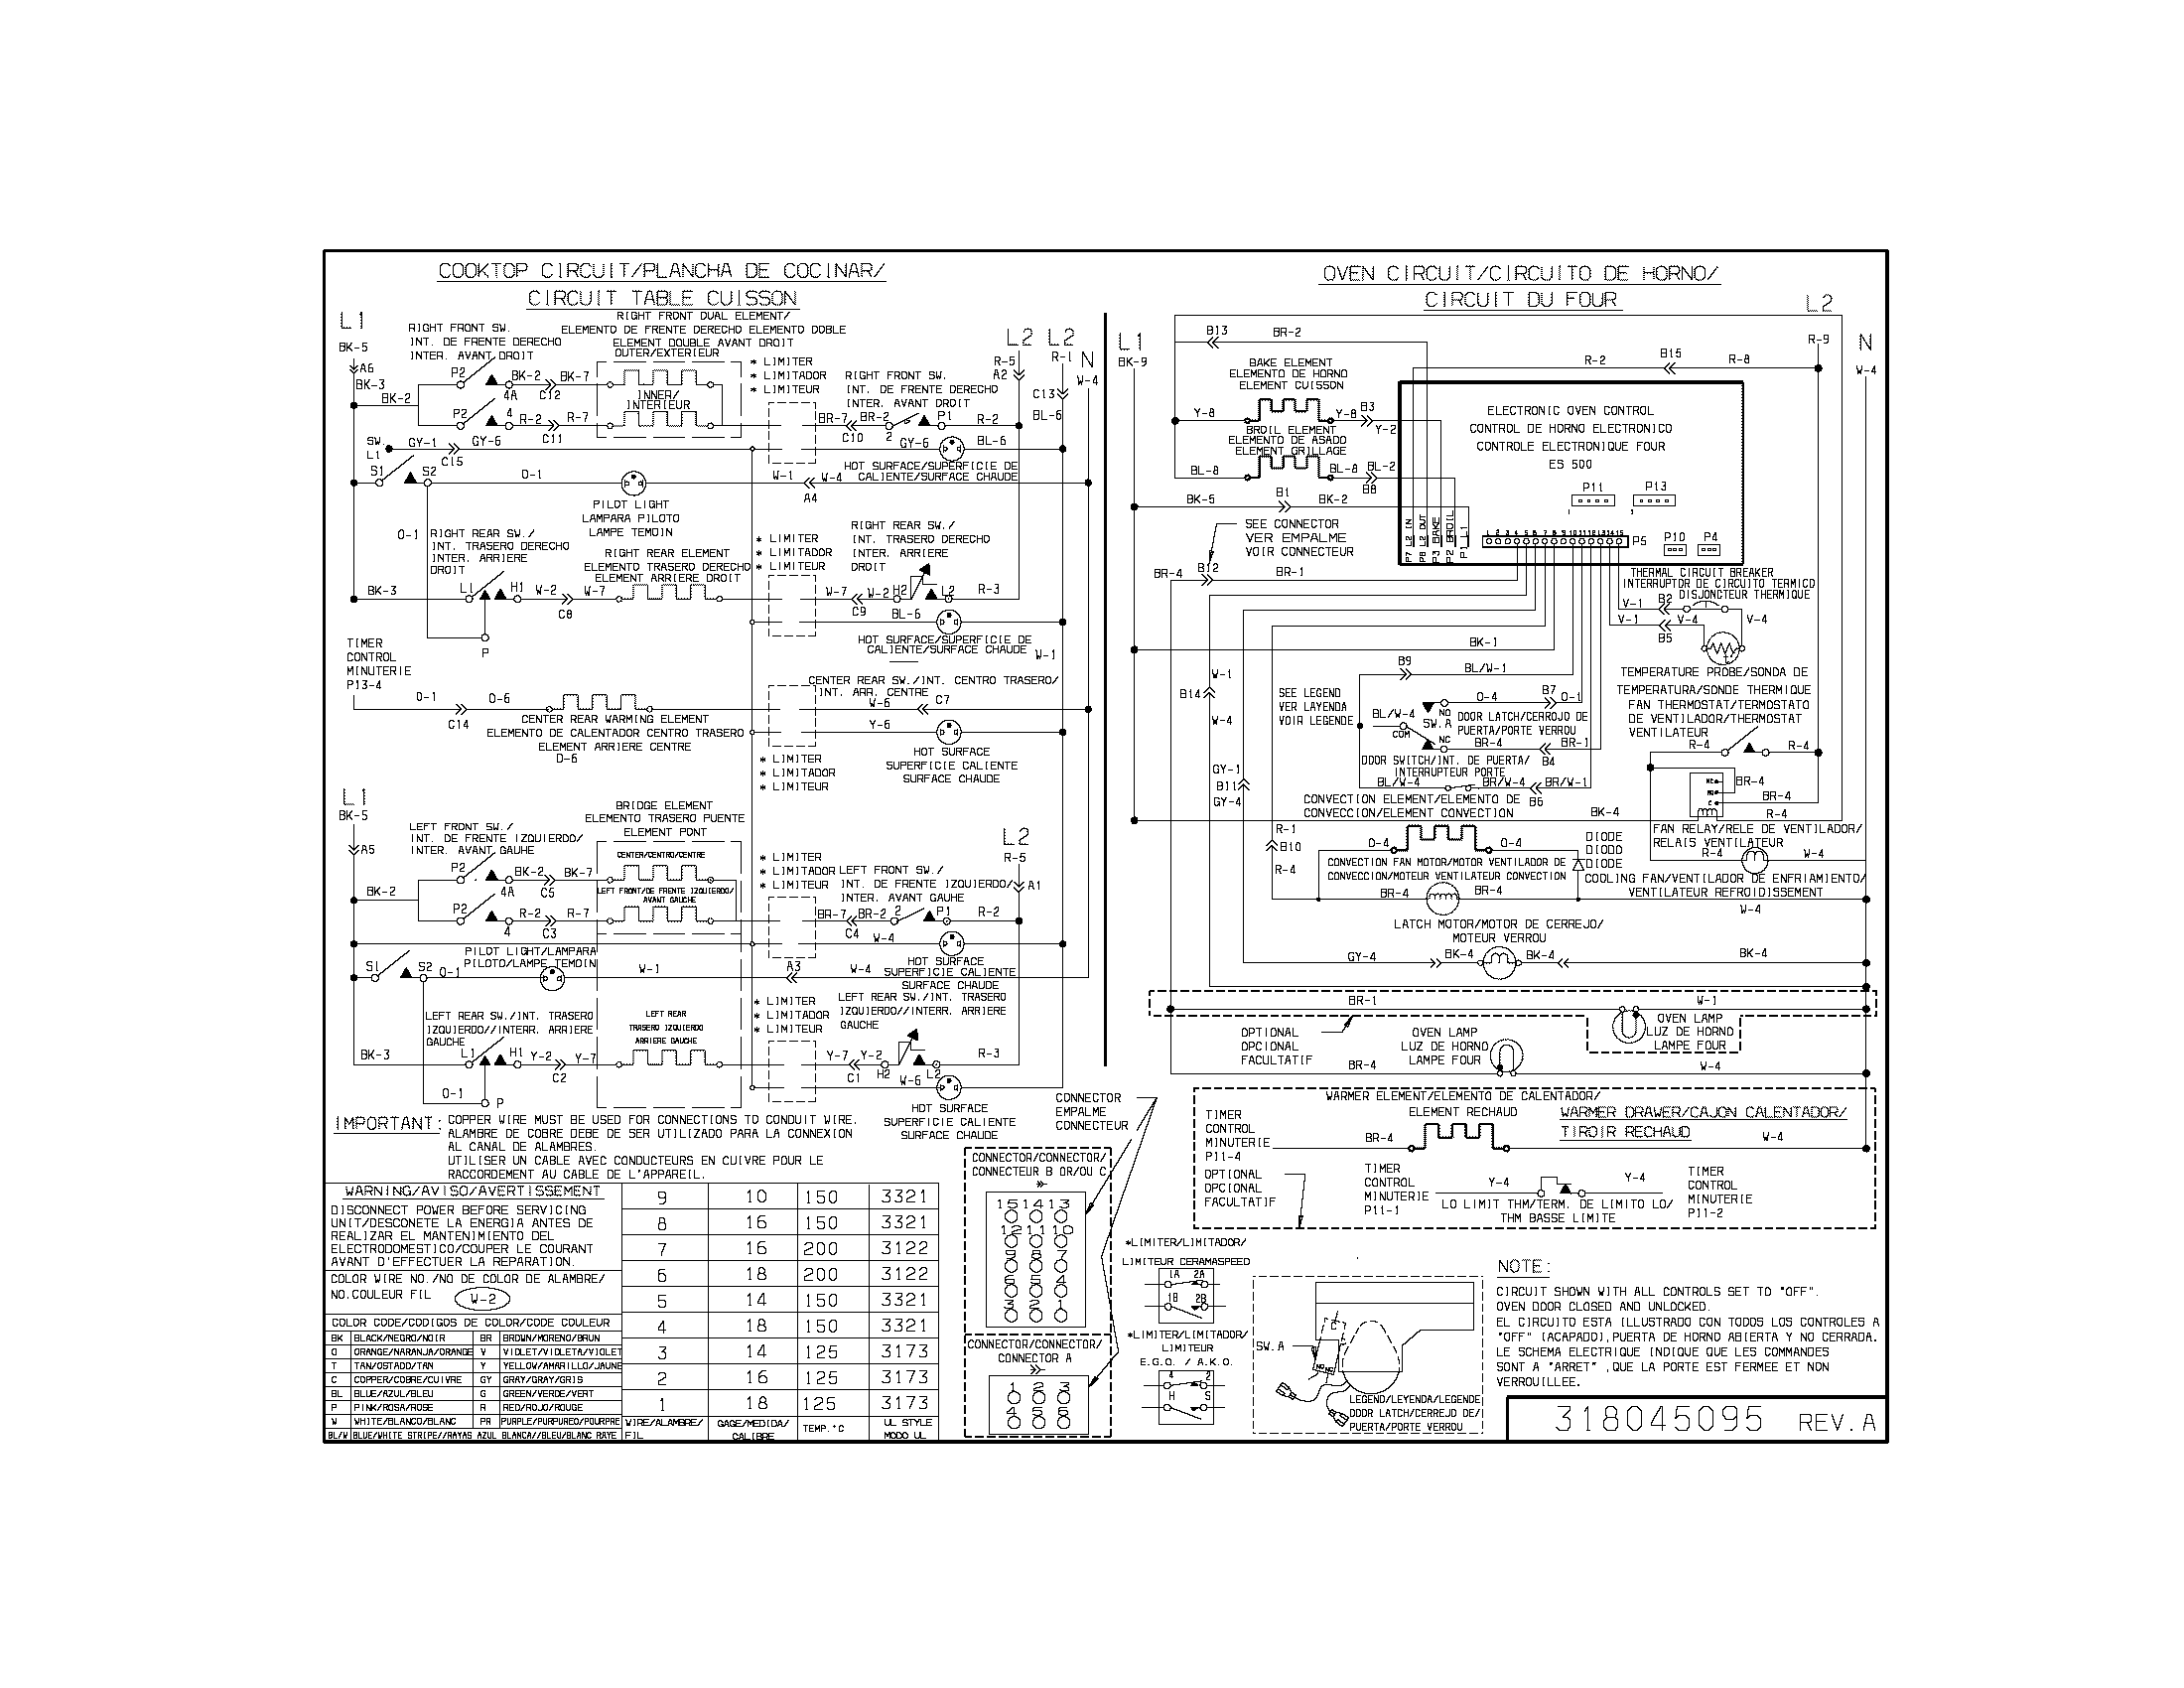 wiring diagram parts frigidaire cpes389cc2 range timer stove clocks and appliance timers wiring diagram for frigidaire refrigerator at fashall.co